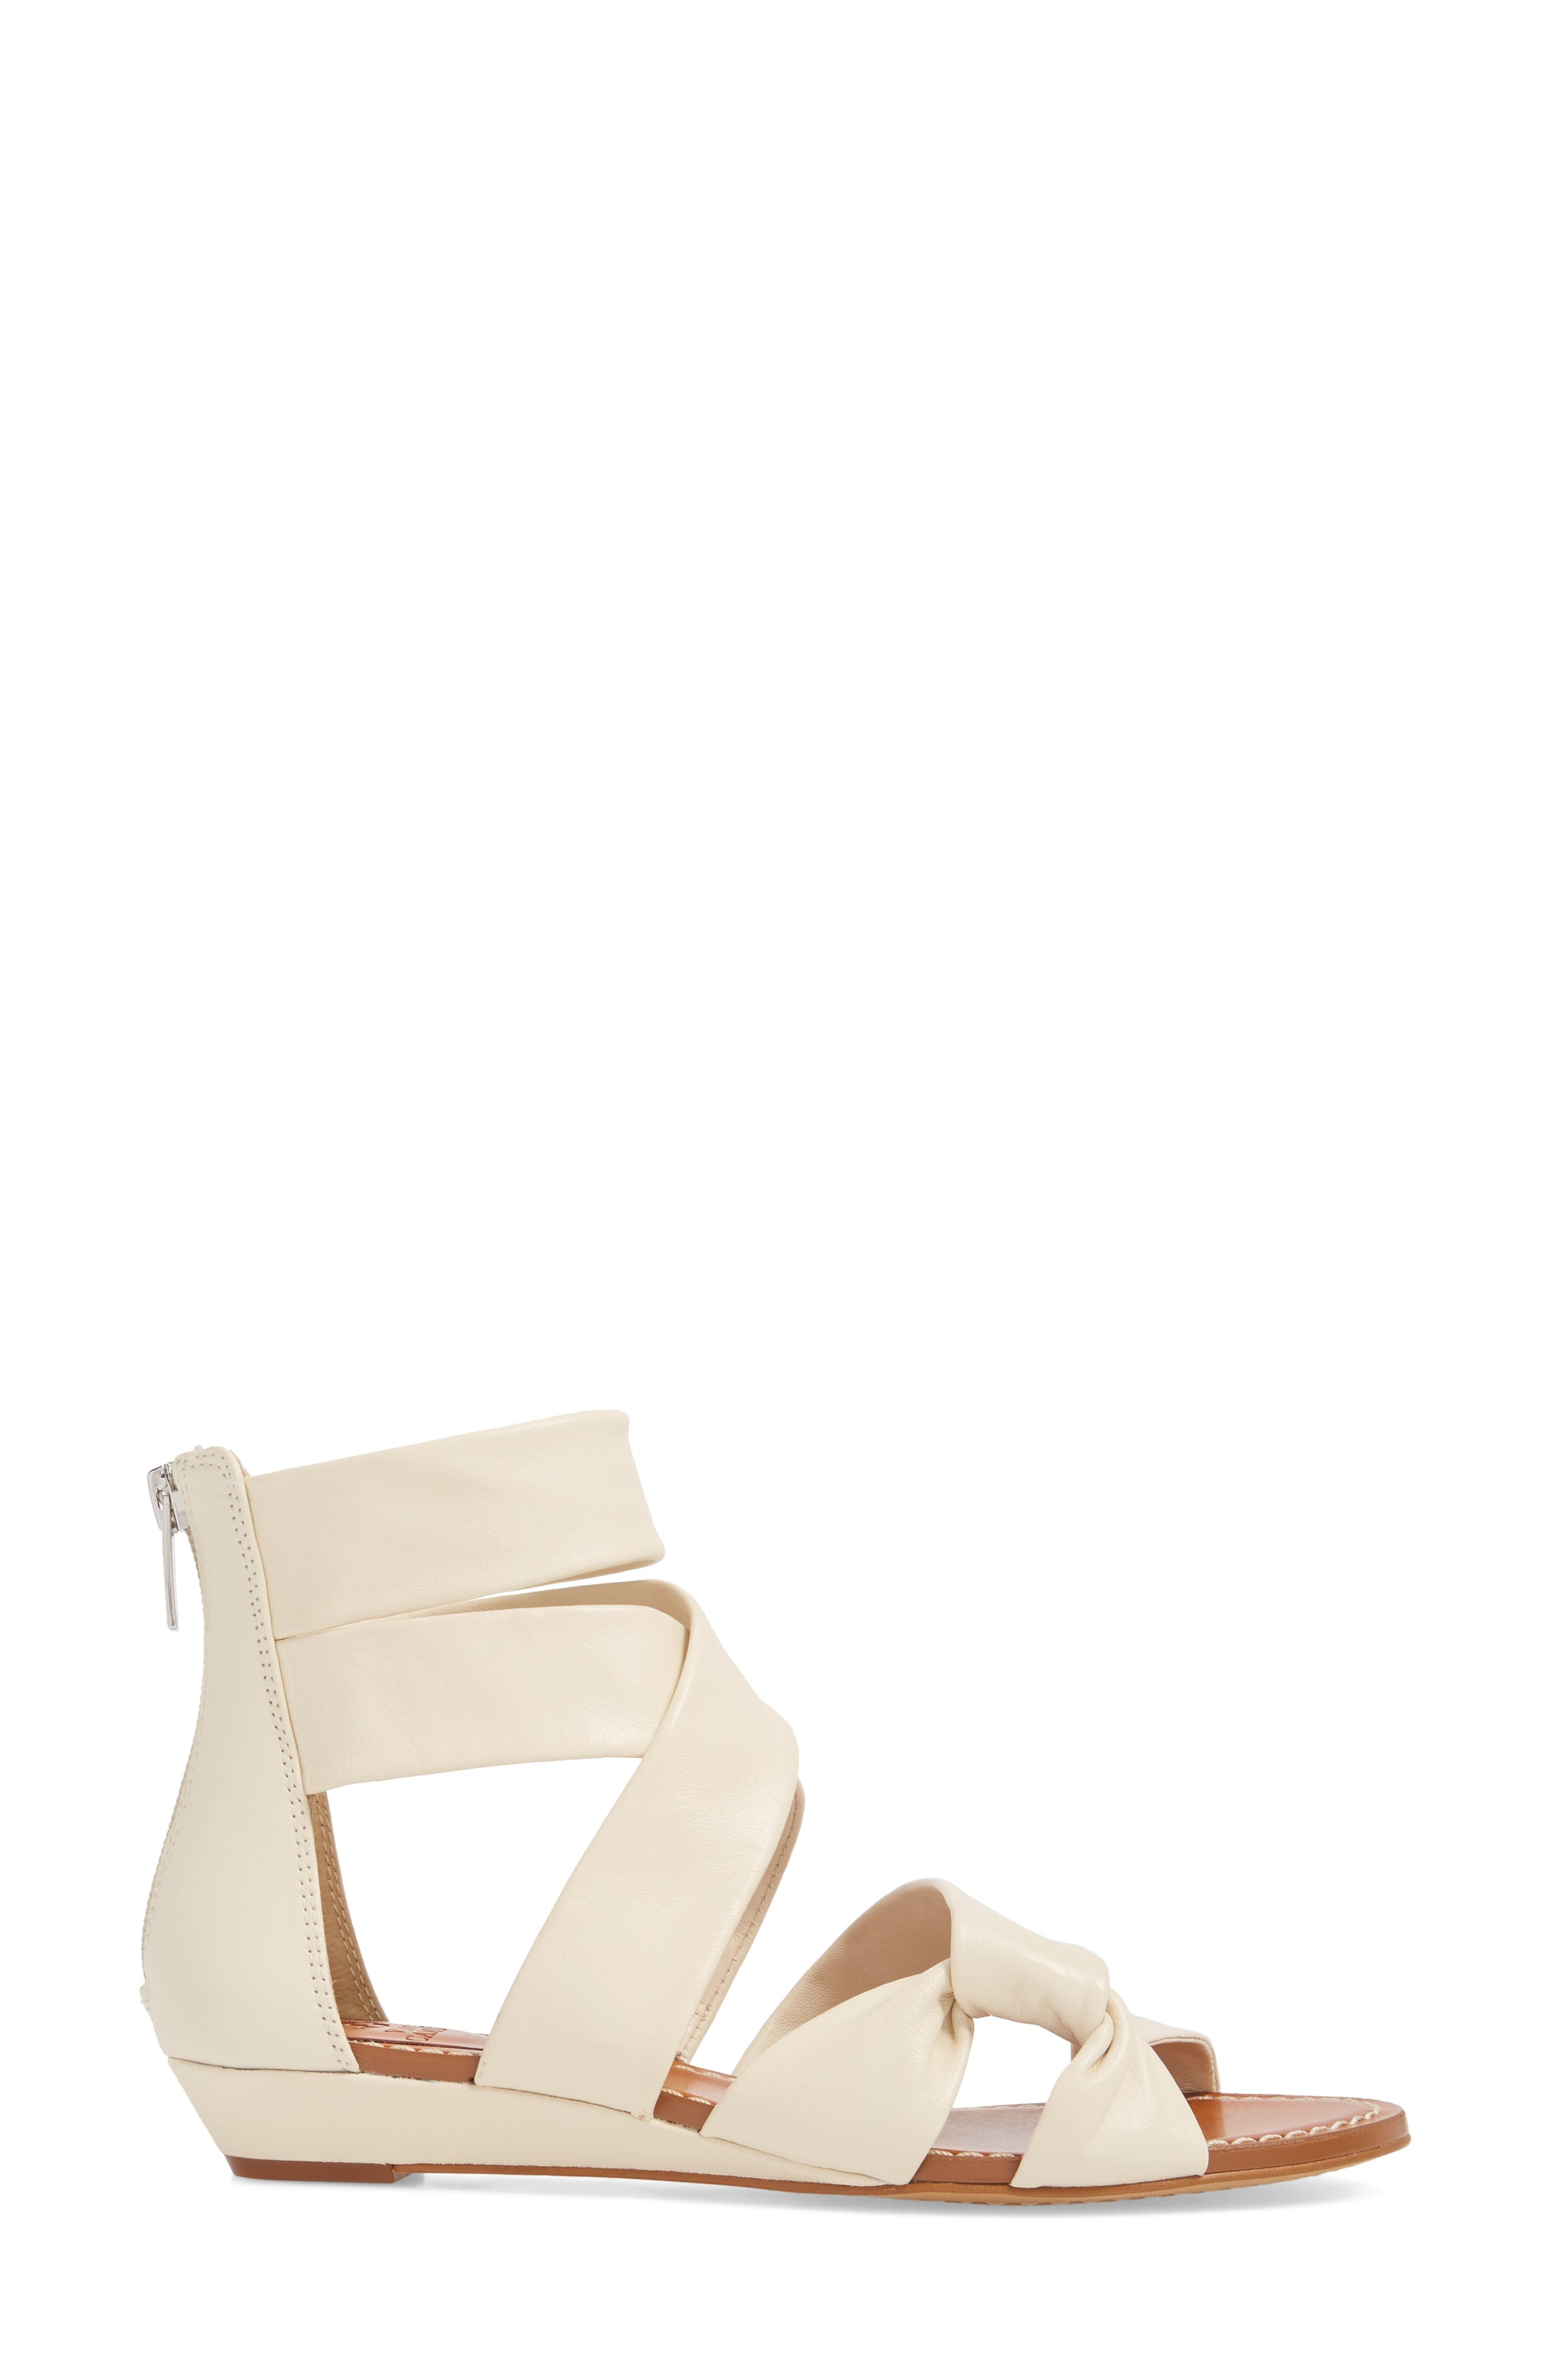 Seevina Low Wedge Sandal,                             Alternate thumbnail 3, color,                             Vanilla Leather